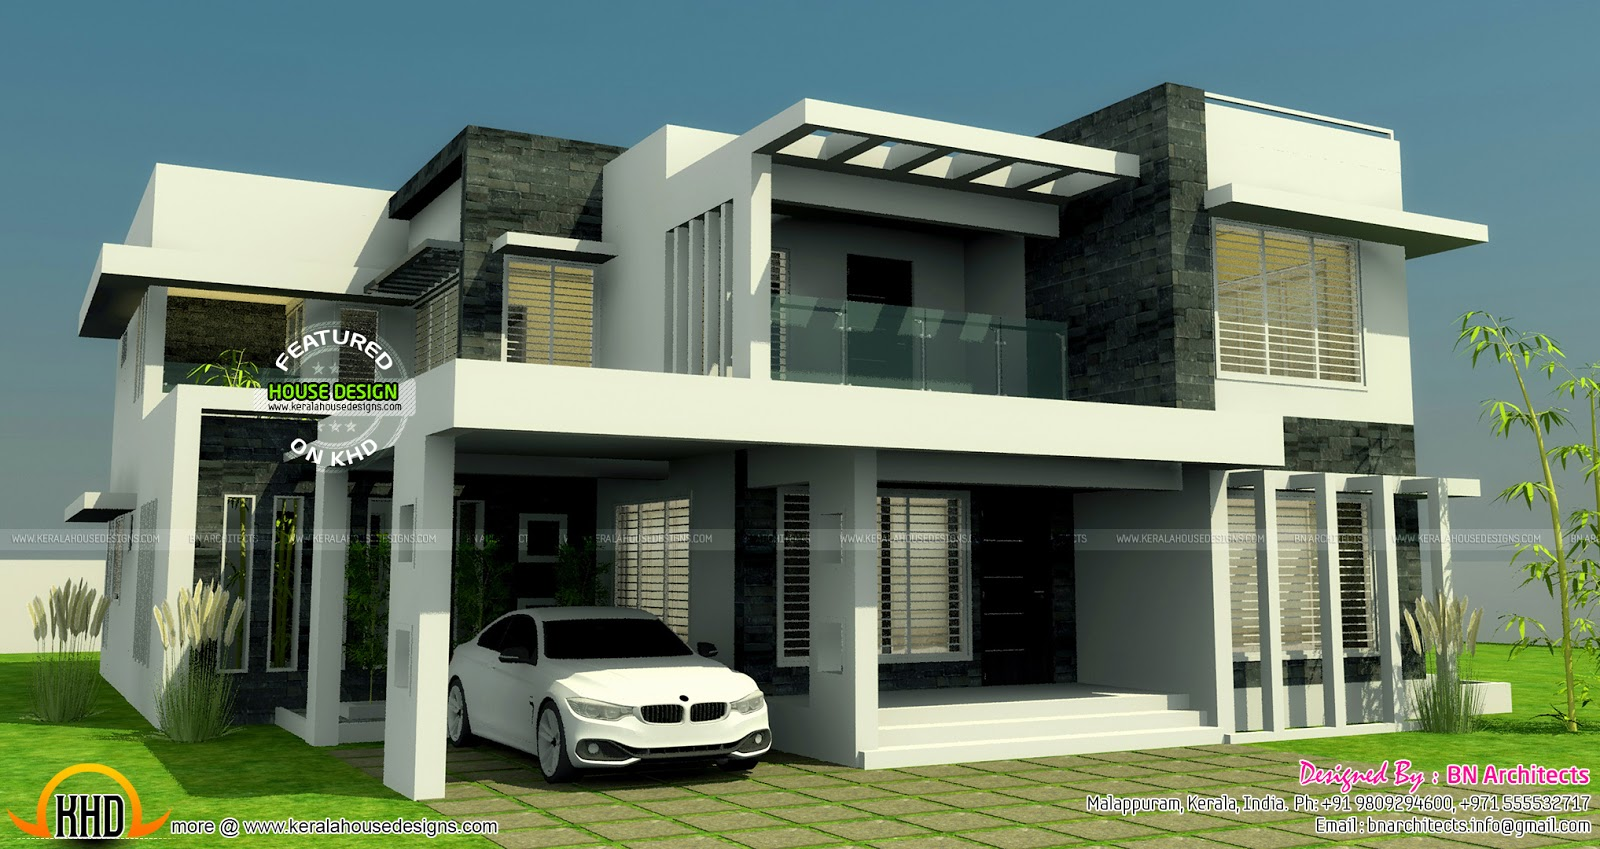 All in one house elevation floor plan and interiors kerala home design and floor plans Home design and elevation